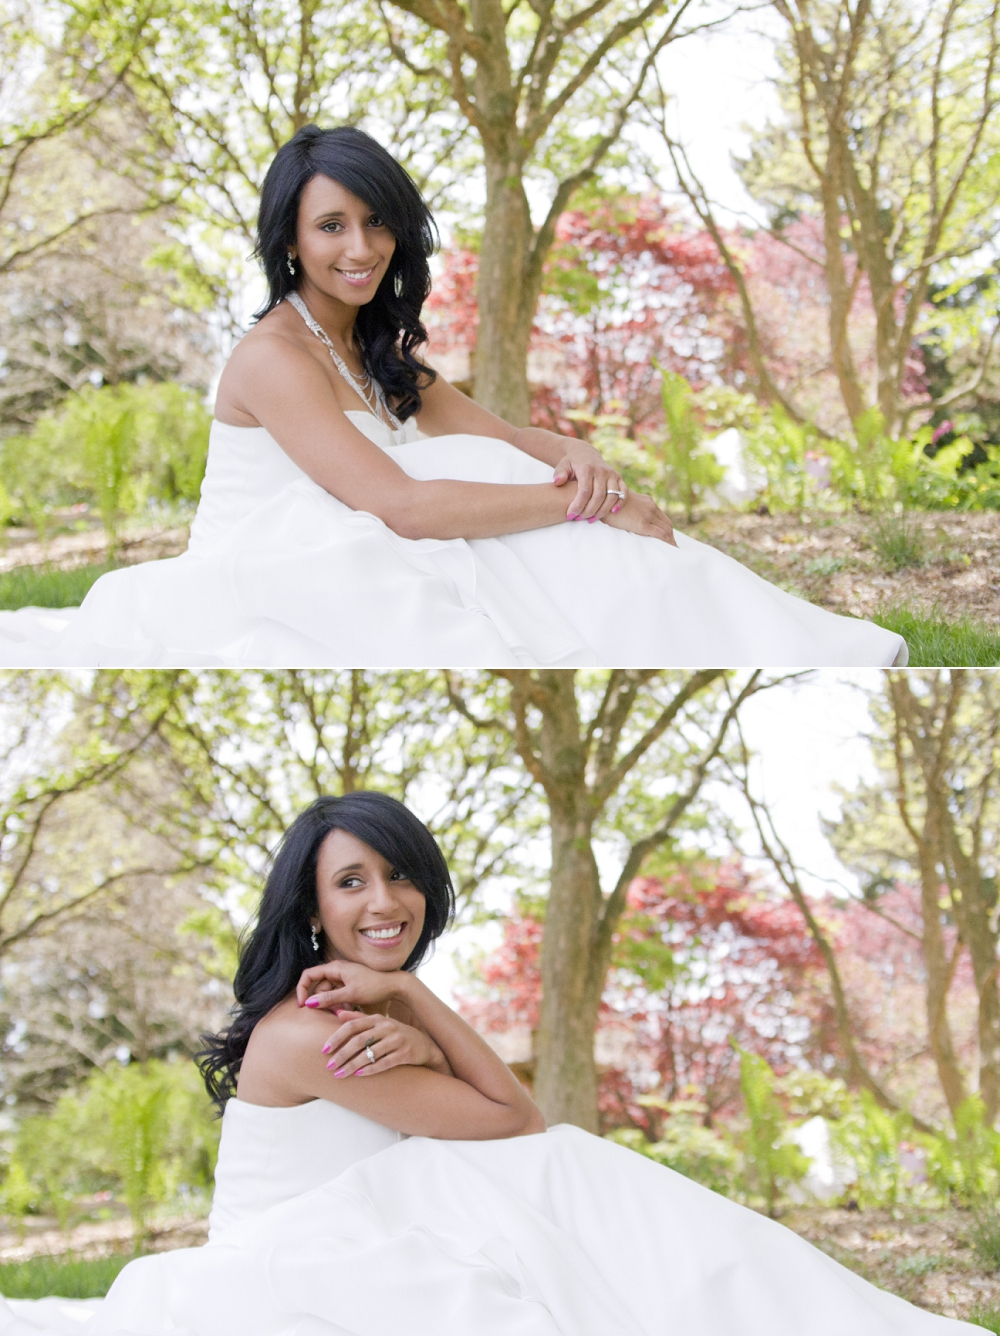 blacksburg-wedding-photographer-virginia-tech-bridal-portraits-10.jpg